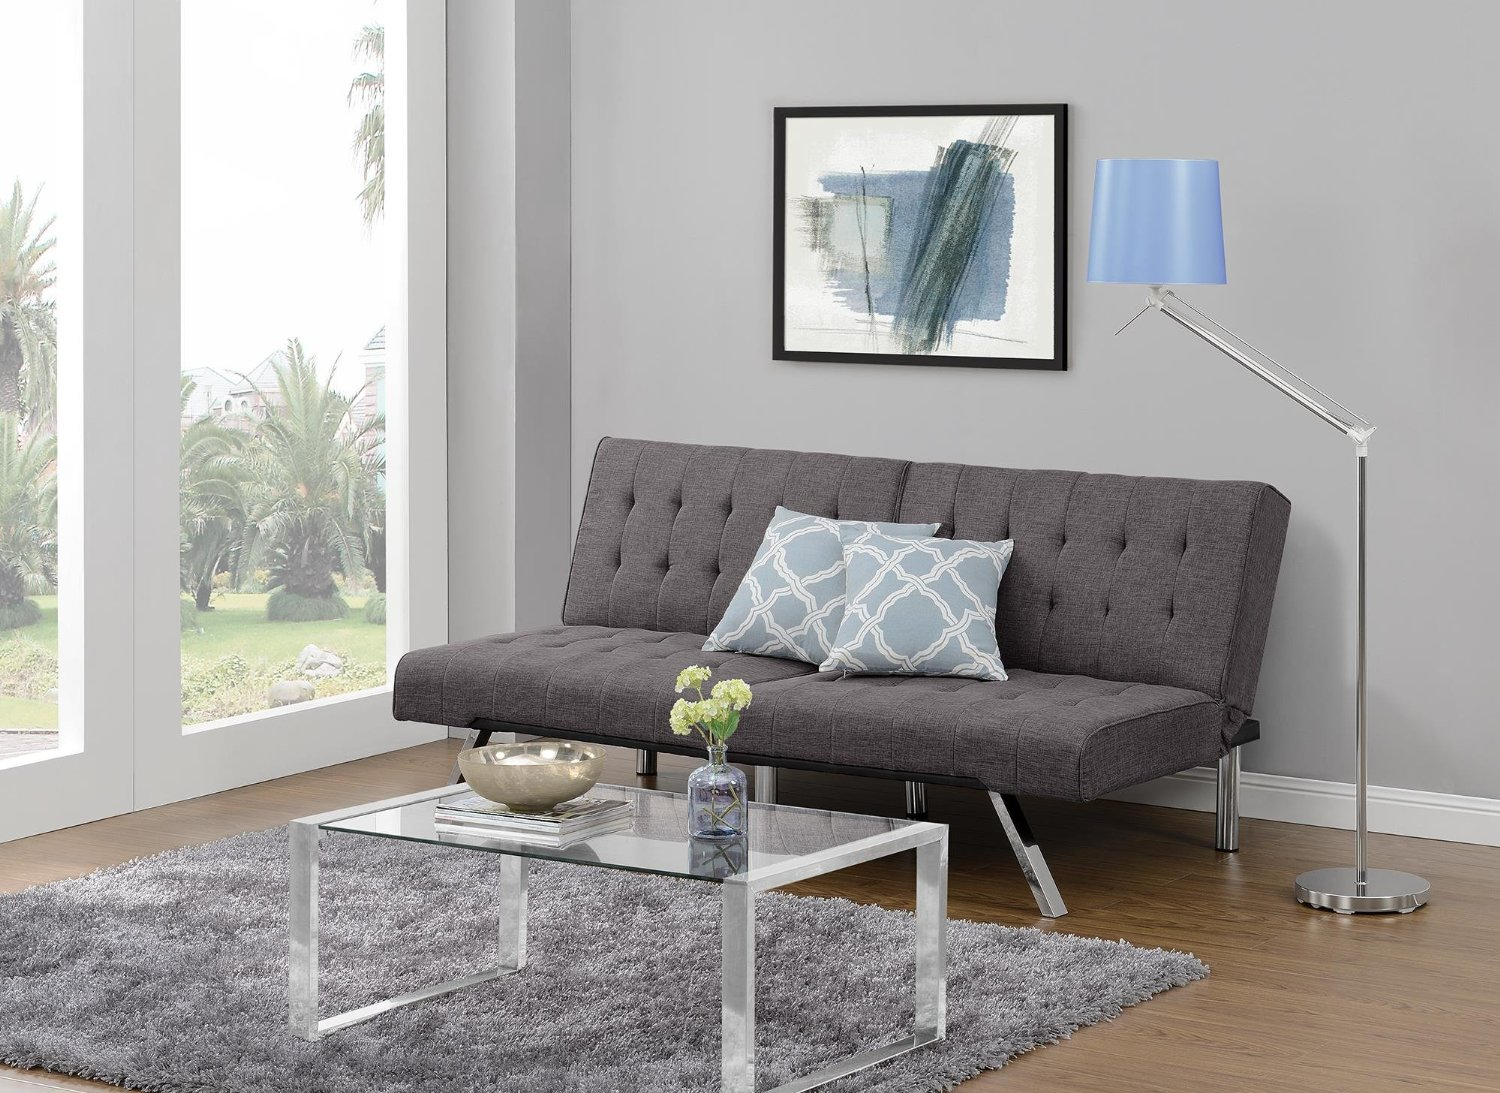 Sleeper Sofa Review Top 10 Best Sleeper Sofas Futons In 2019 Review Sambatop10